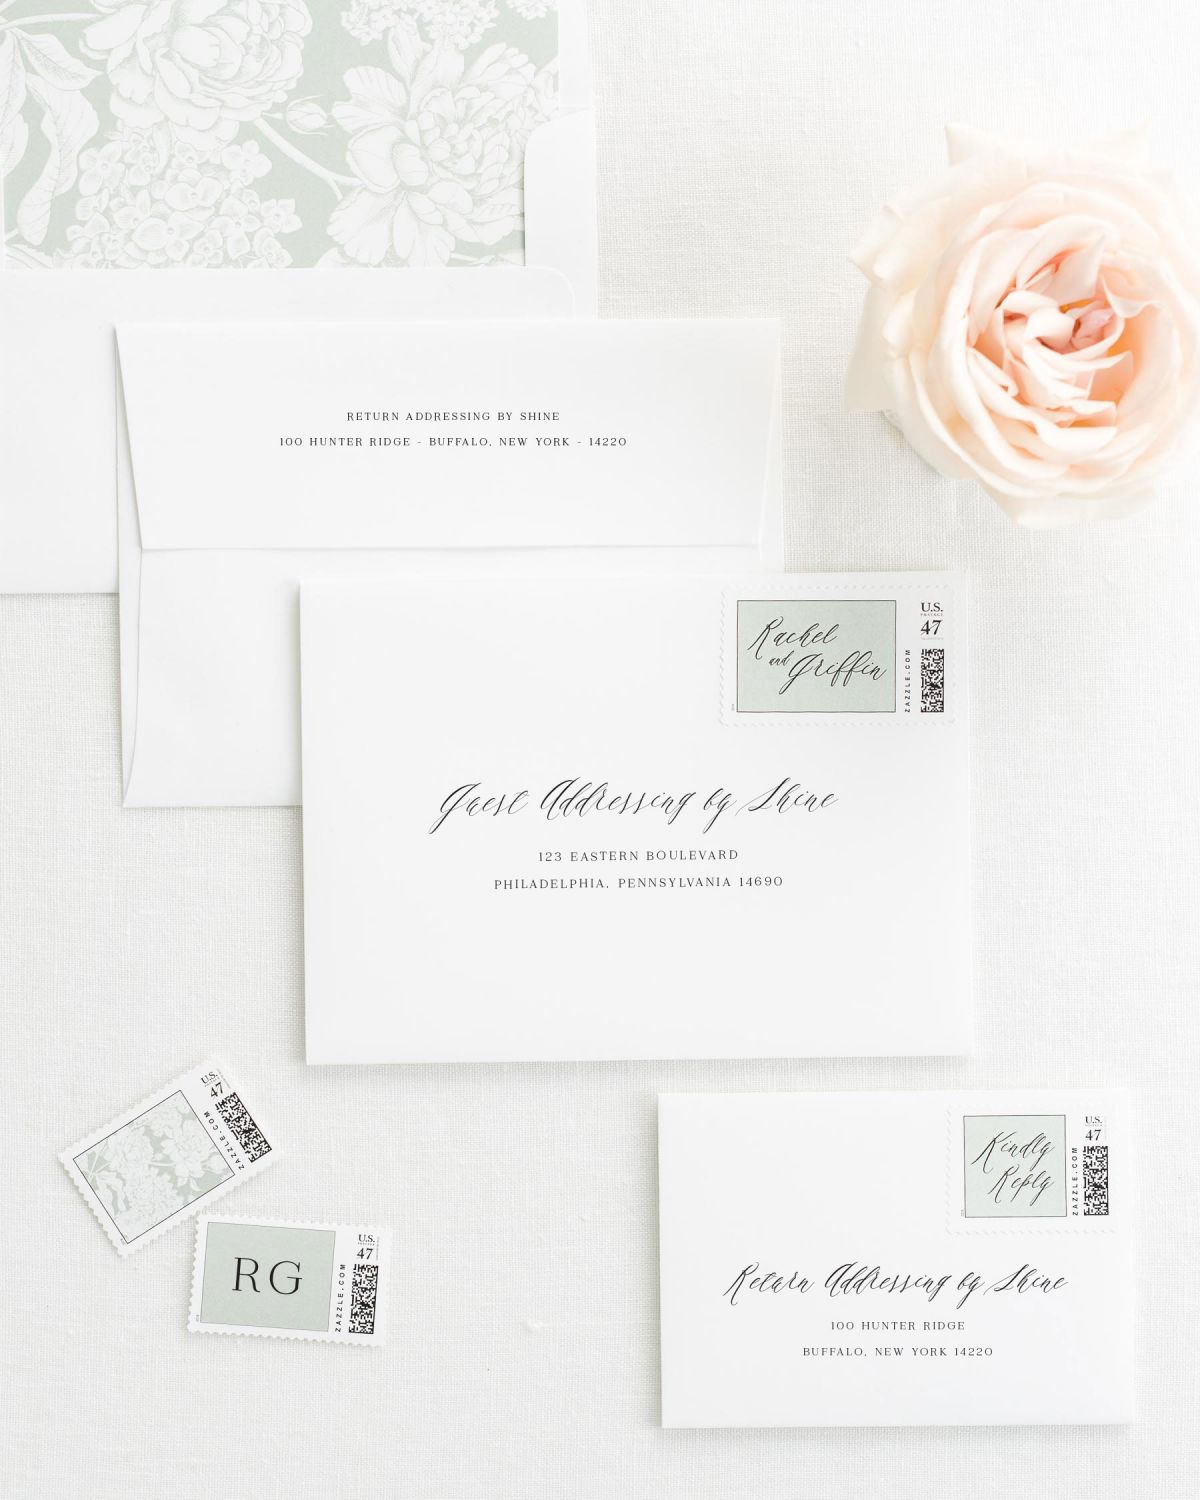 Wedding Invitation Envelopes With Pre Printed Addresses And Matching Sea Salt Personalized Stamps